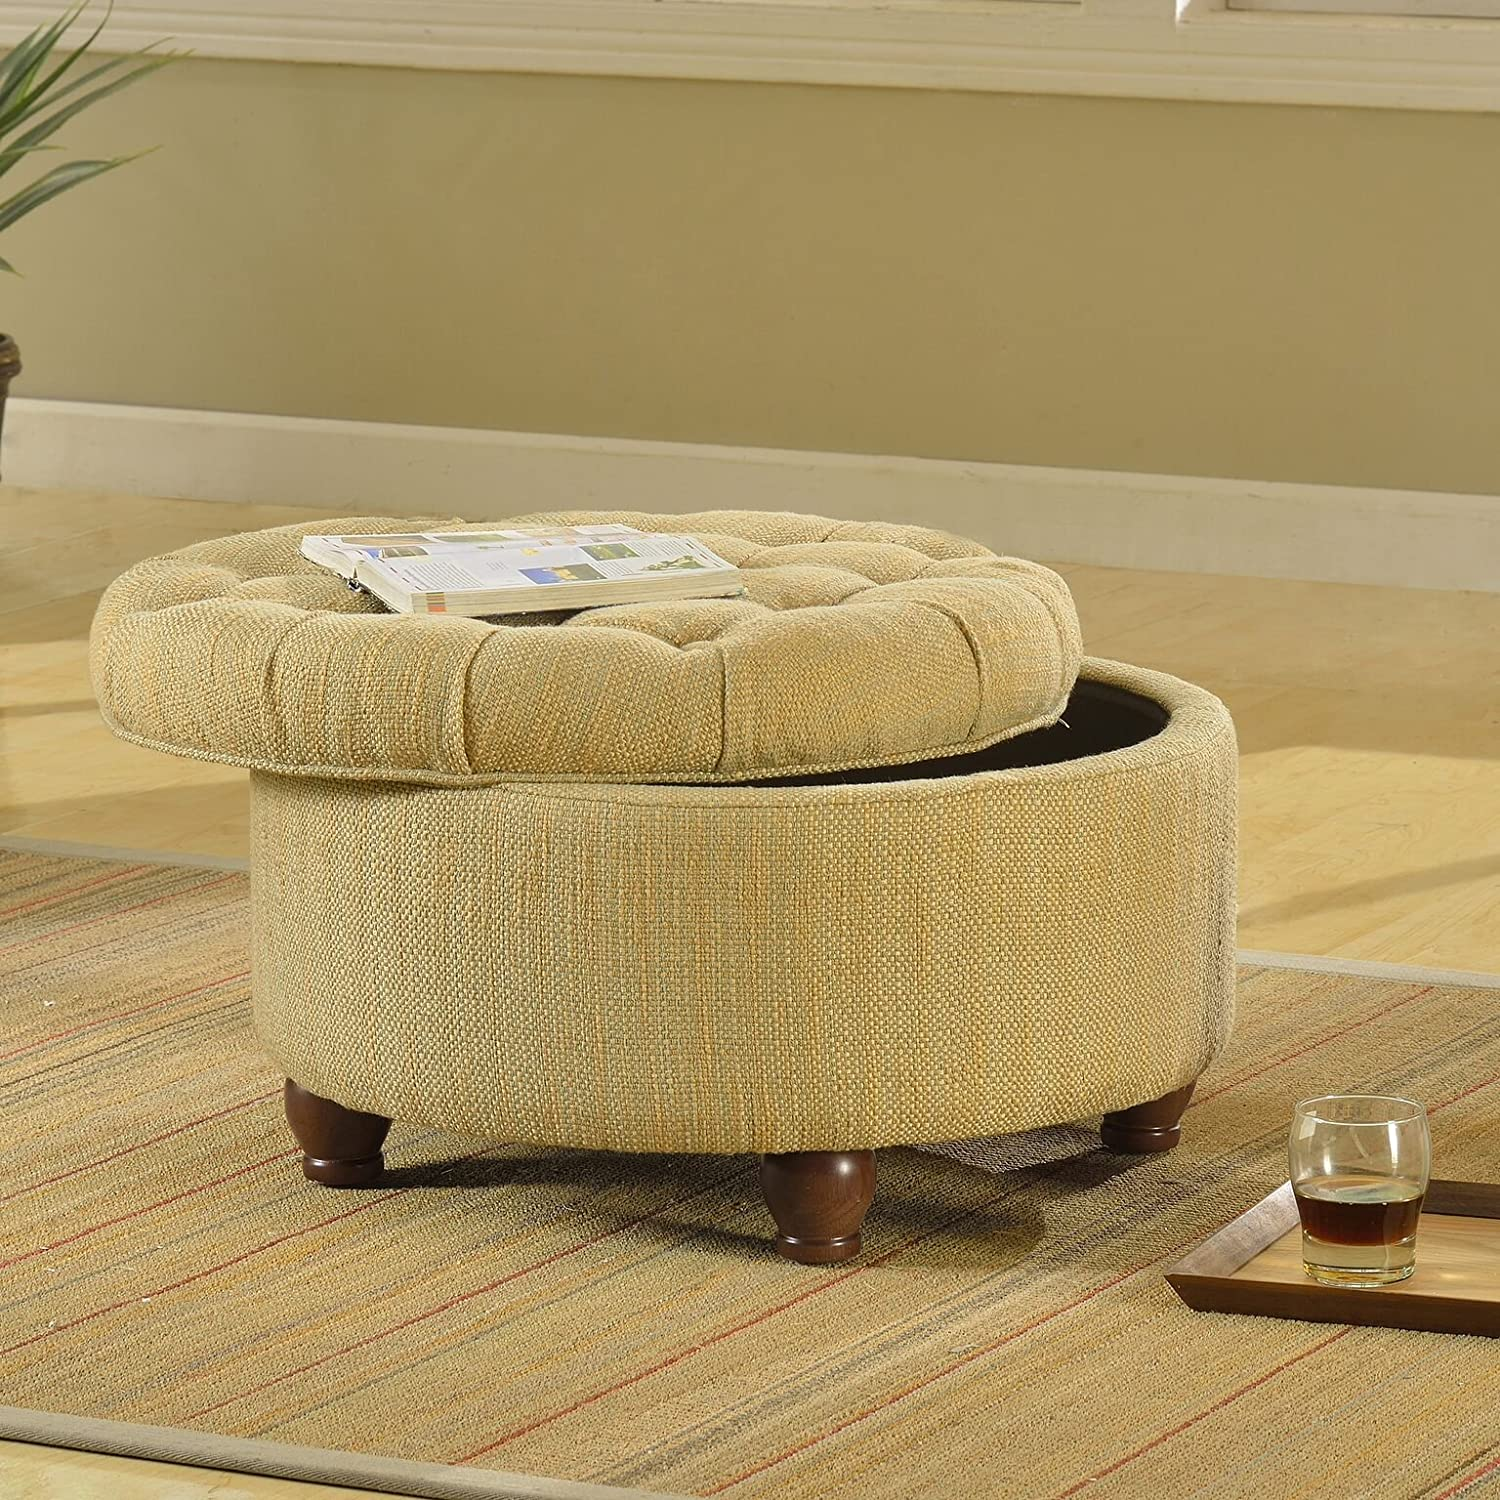 Kinfine N8264-F1077 Ottoman Round Tufted Tweed Storage Tan and Cream